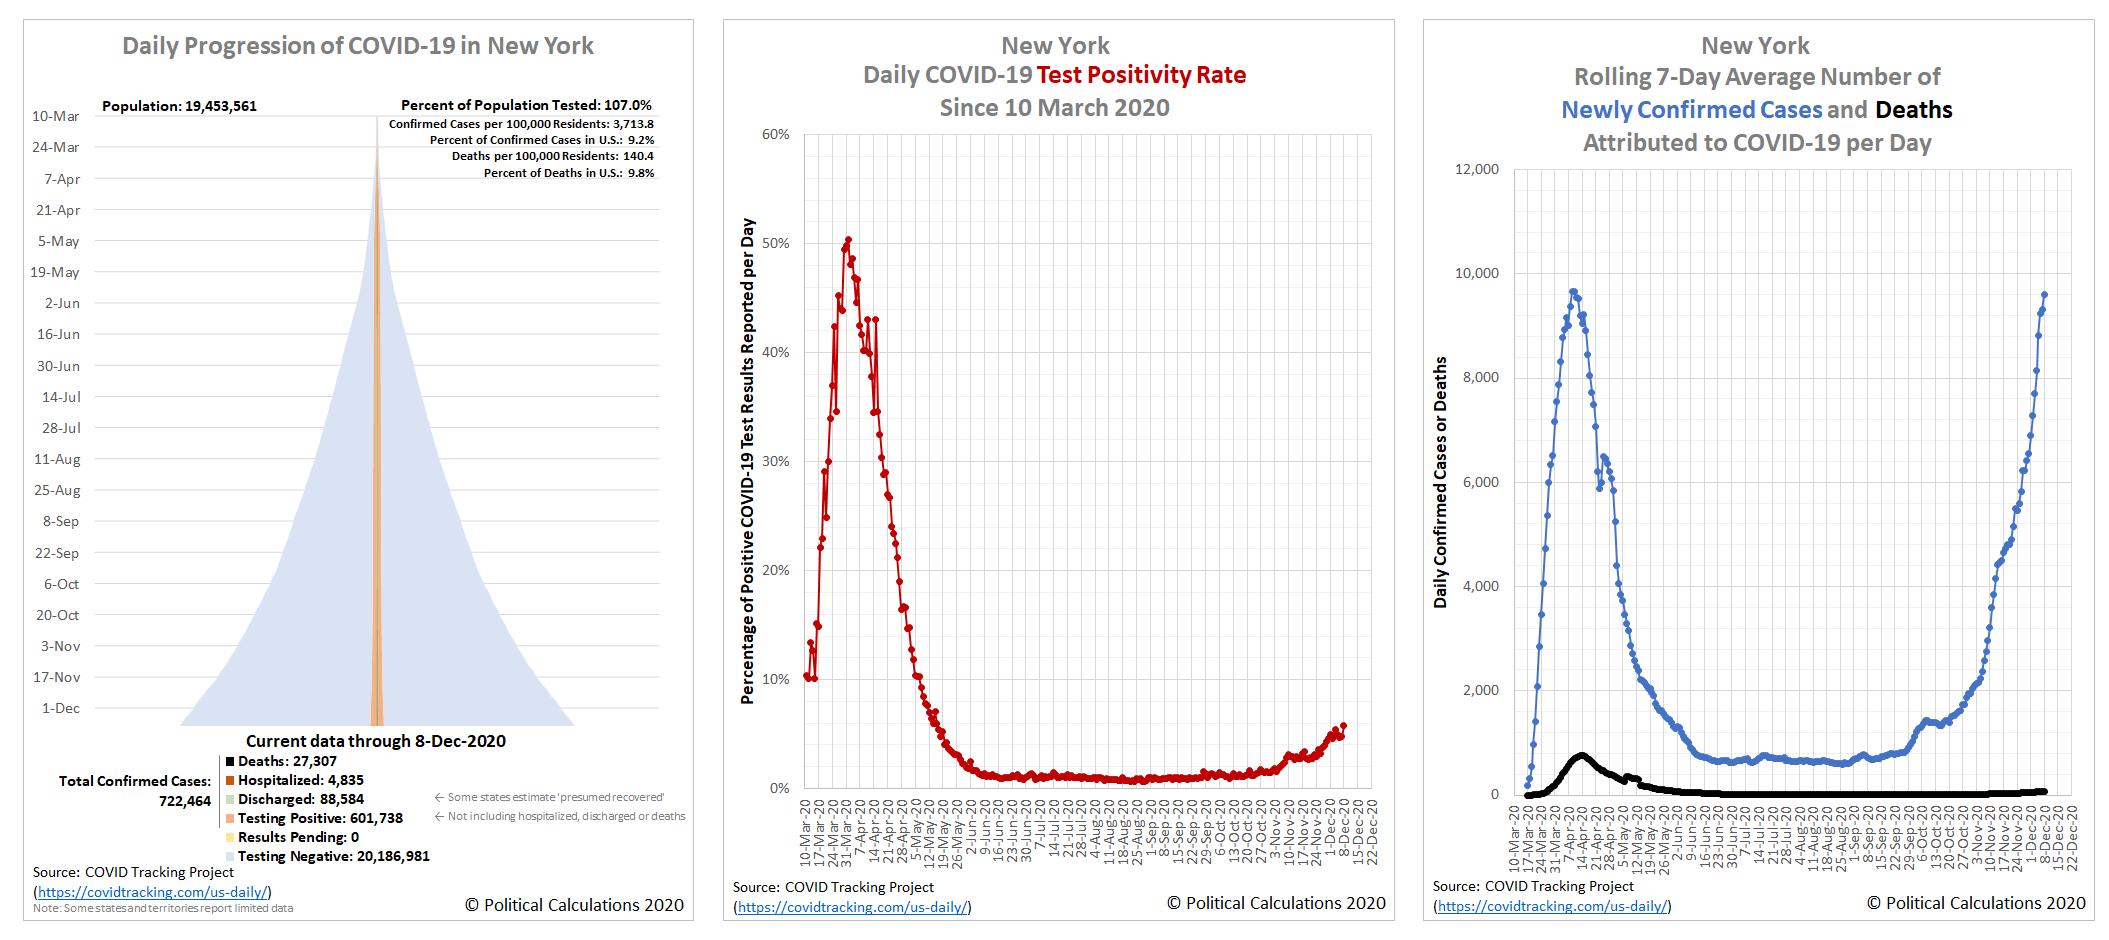 Daily Progression of COVID-19, Daily Positivity Rate, and Rolling 7-Day Averages of Newly Confirmed Cases and Deaths in New York, 10 March 2020 - 8 December 2020